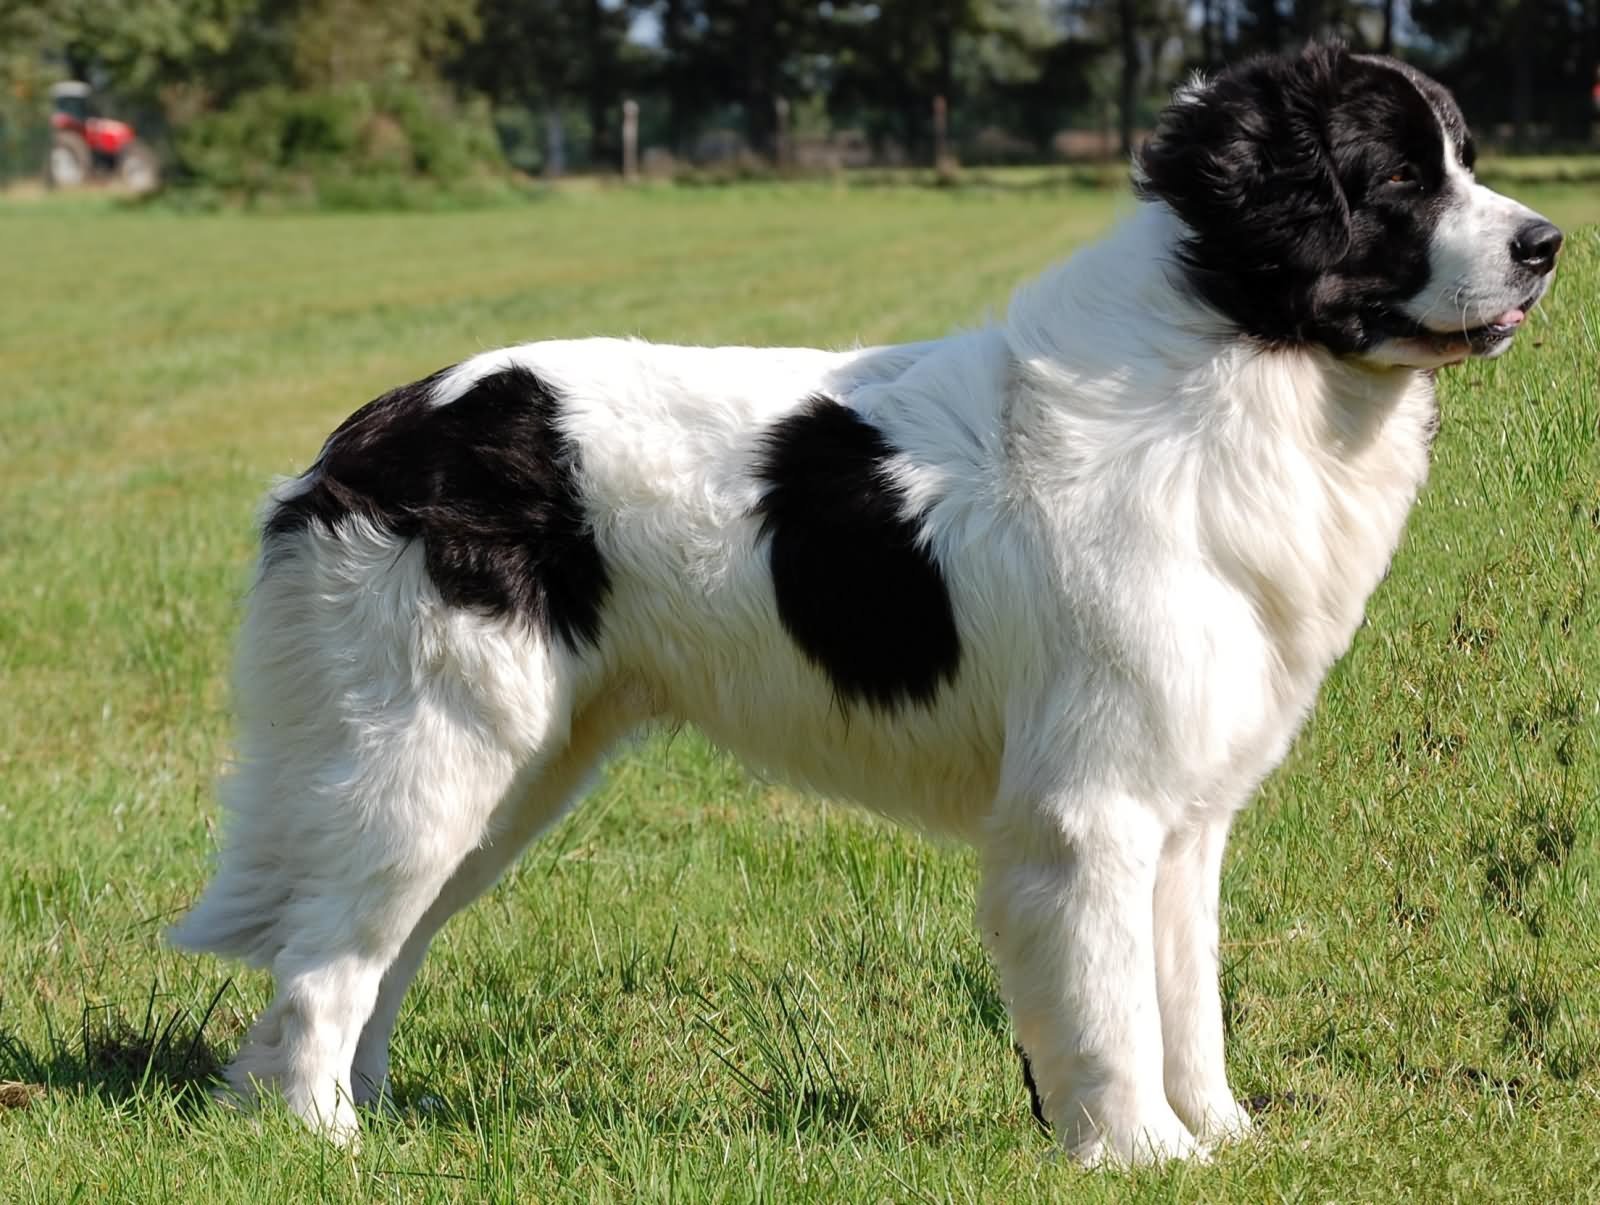 35 very beautiful newfoundland dog pictures - Black And White Newfoundland Standing In Garden